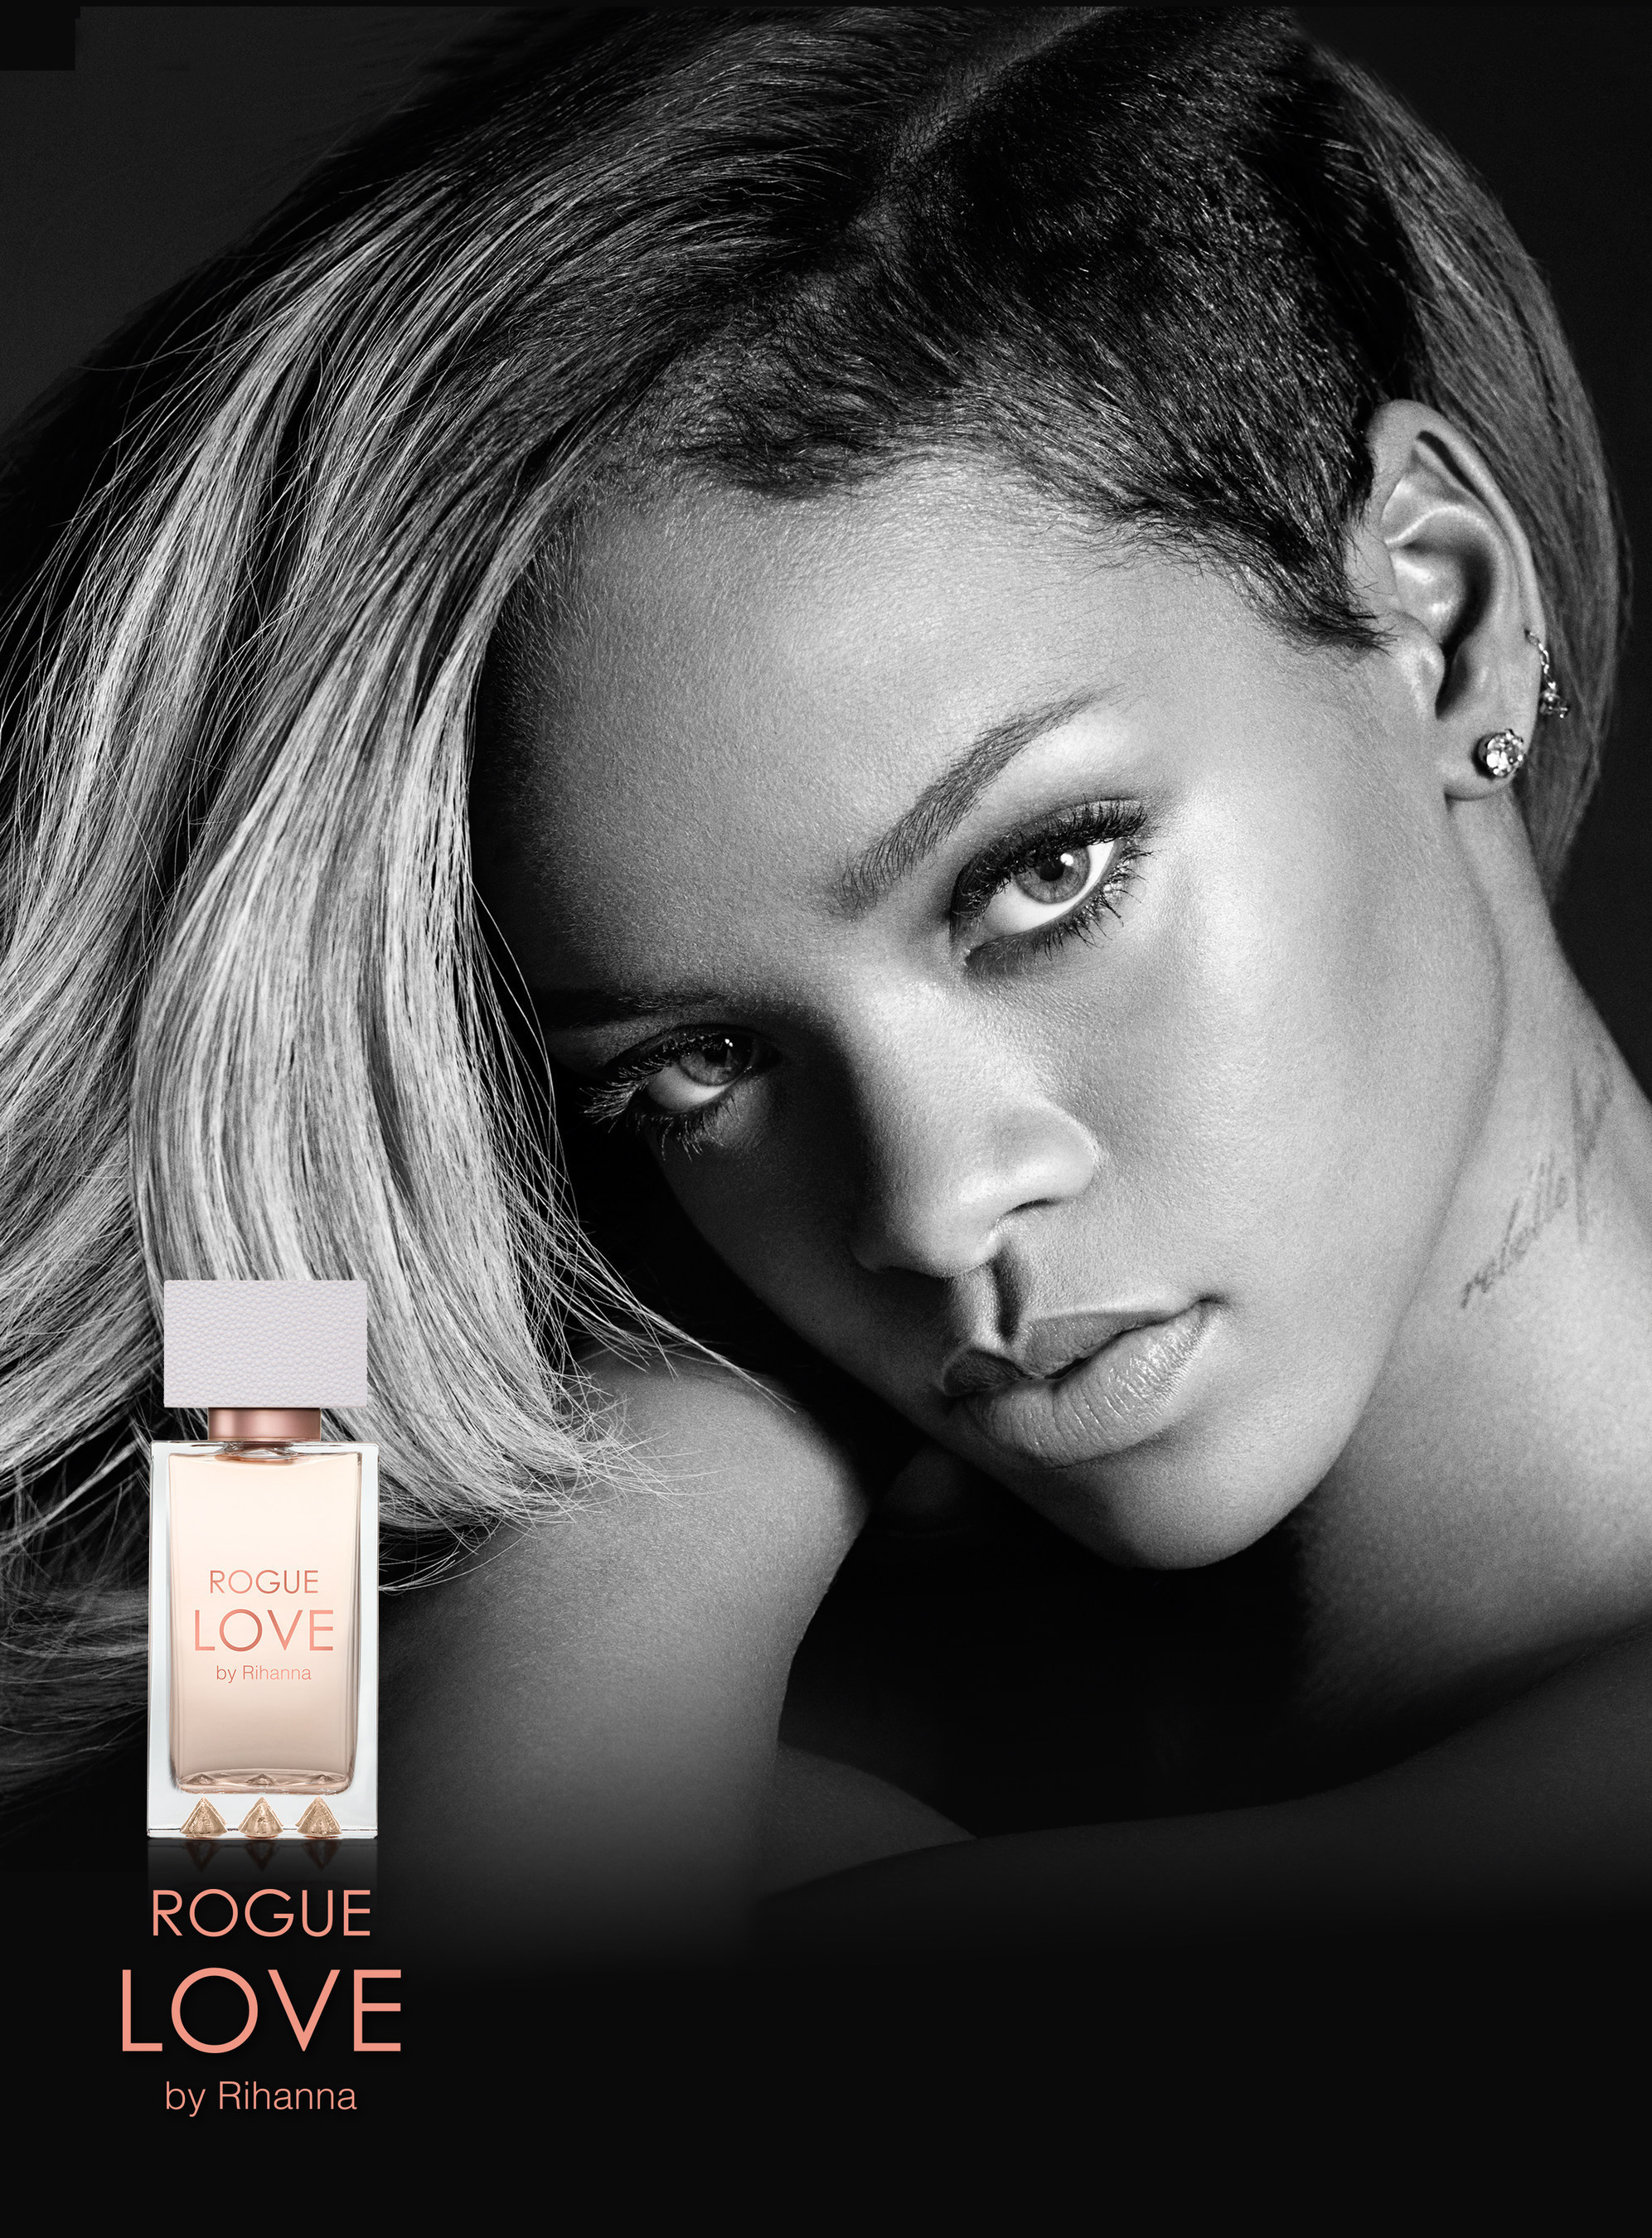 Rihanna launches ROGUE LOVE on sale now at Macys - a fragrance for women